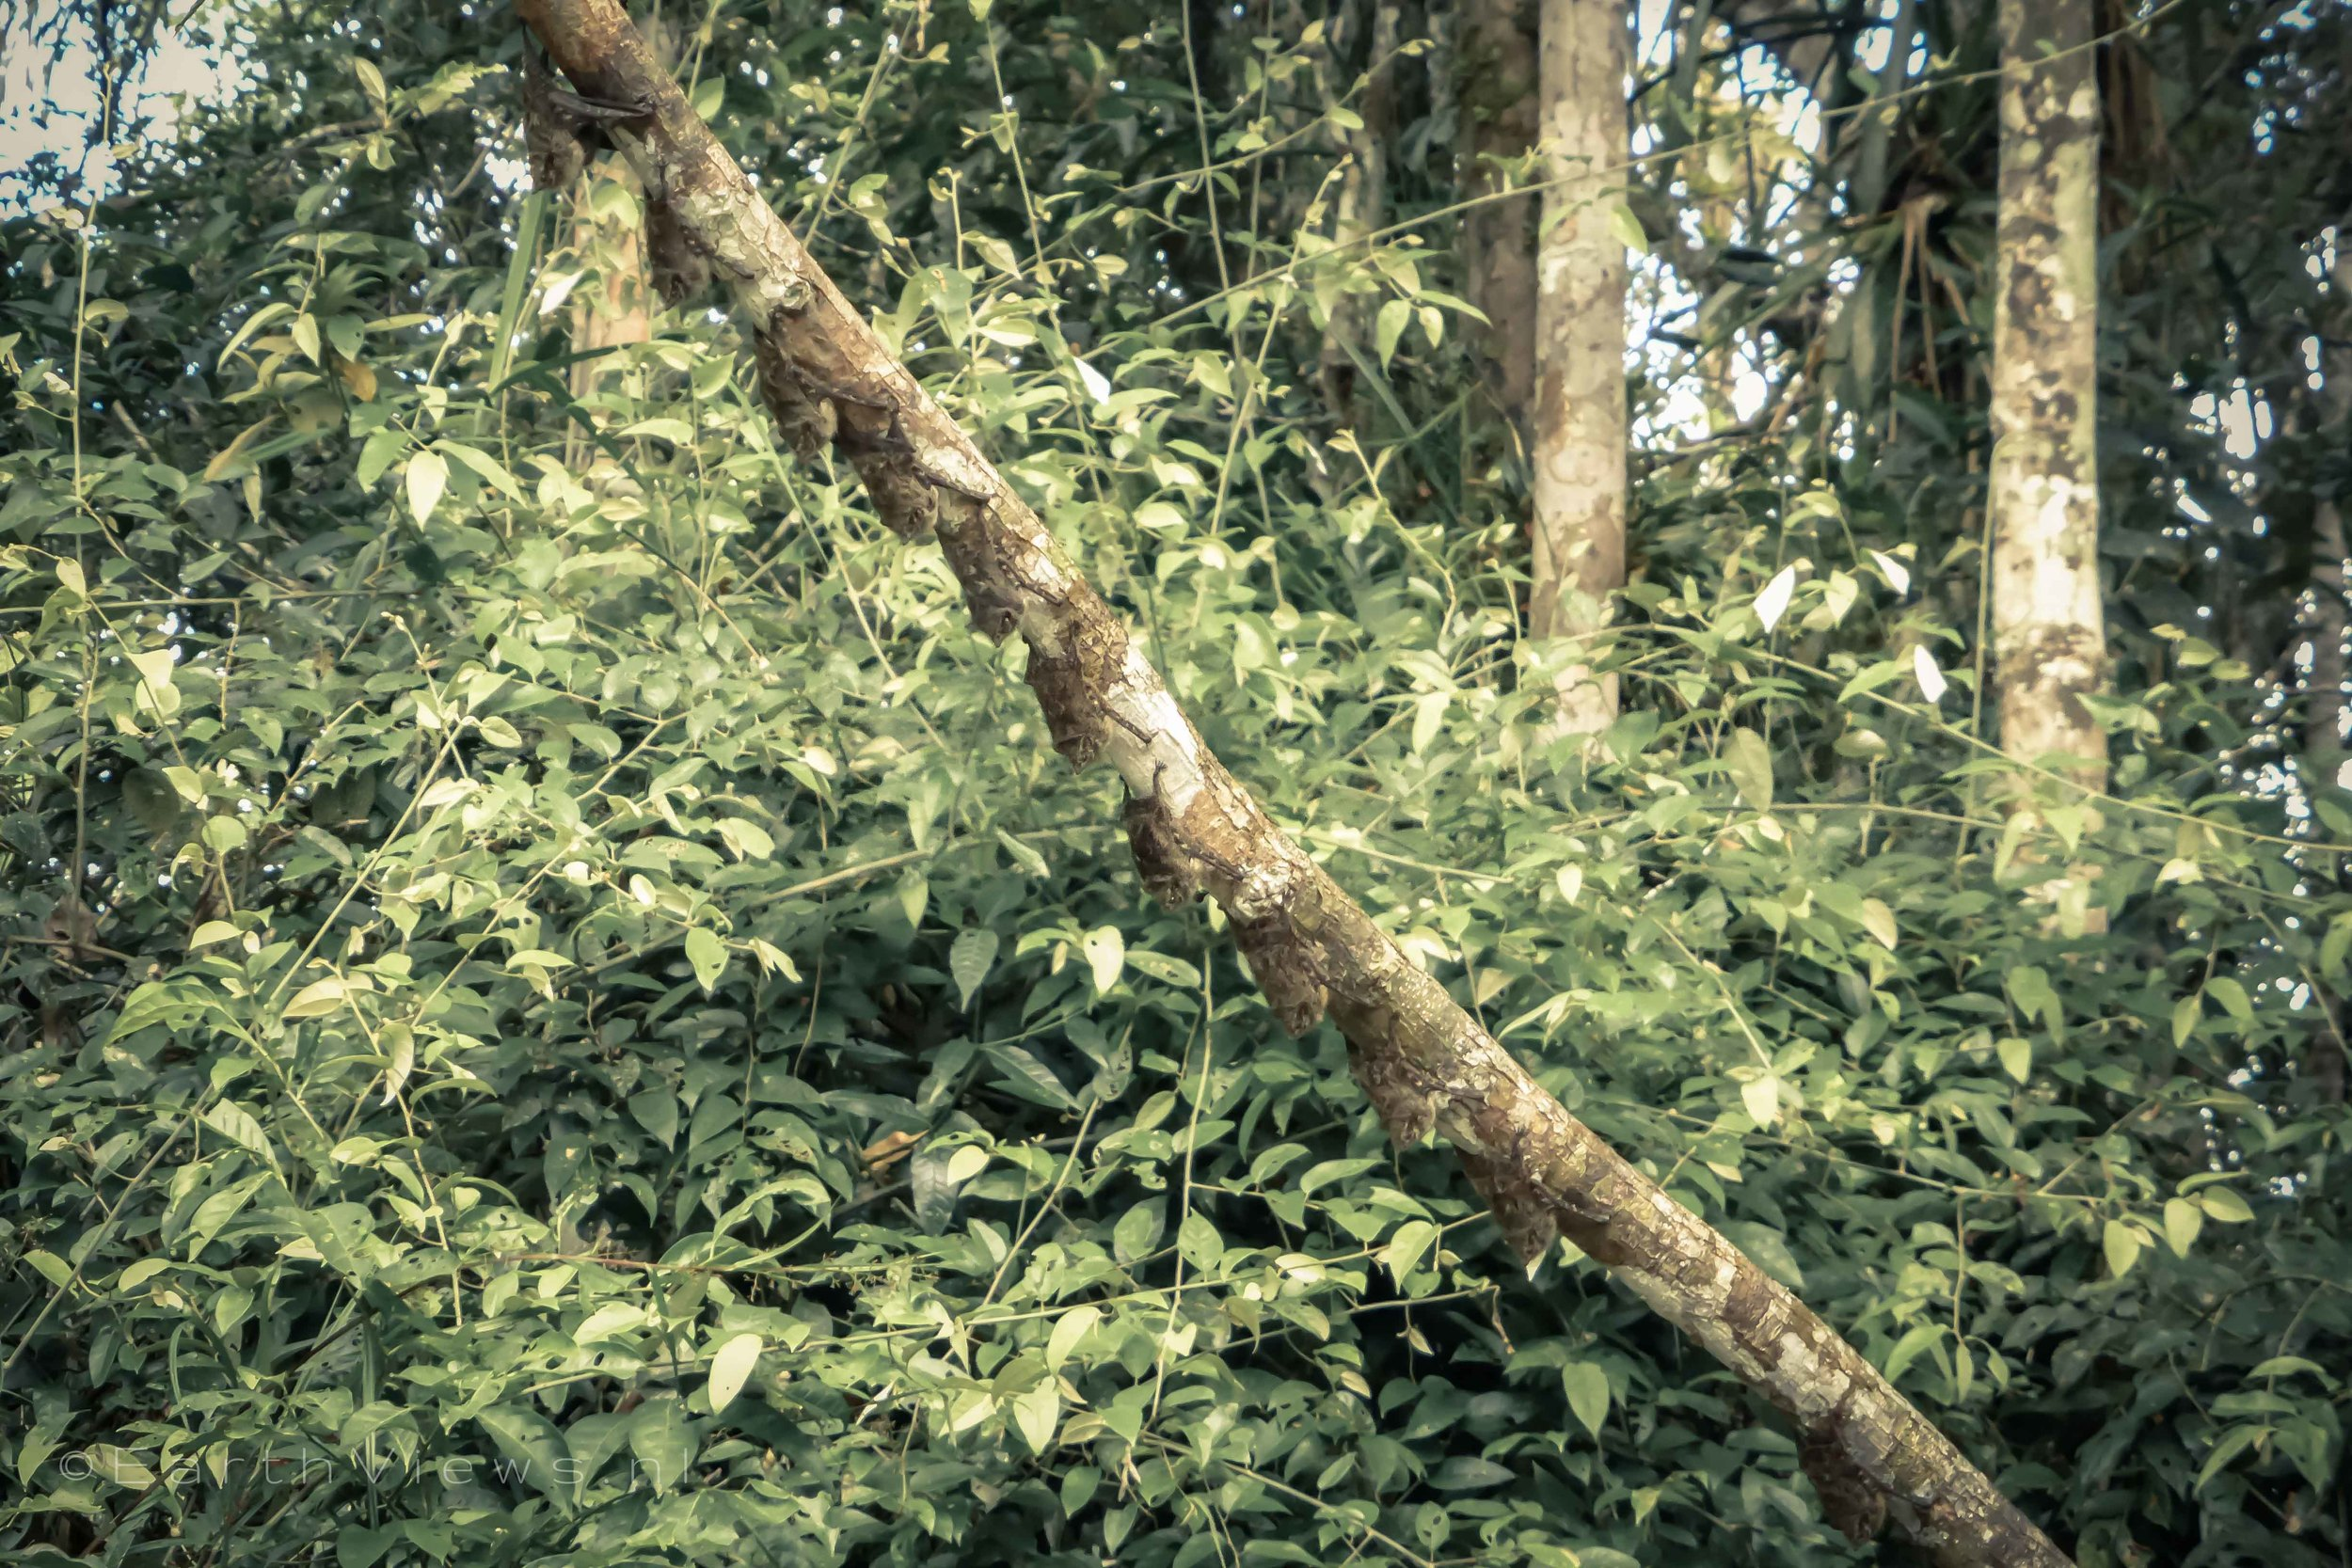 Many well camouflaged bats on a branch.